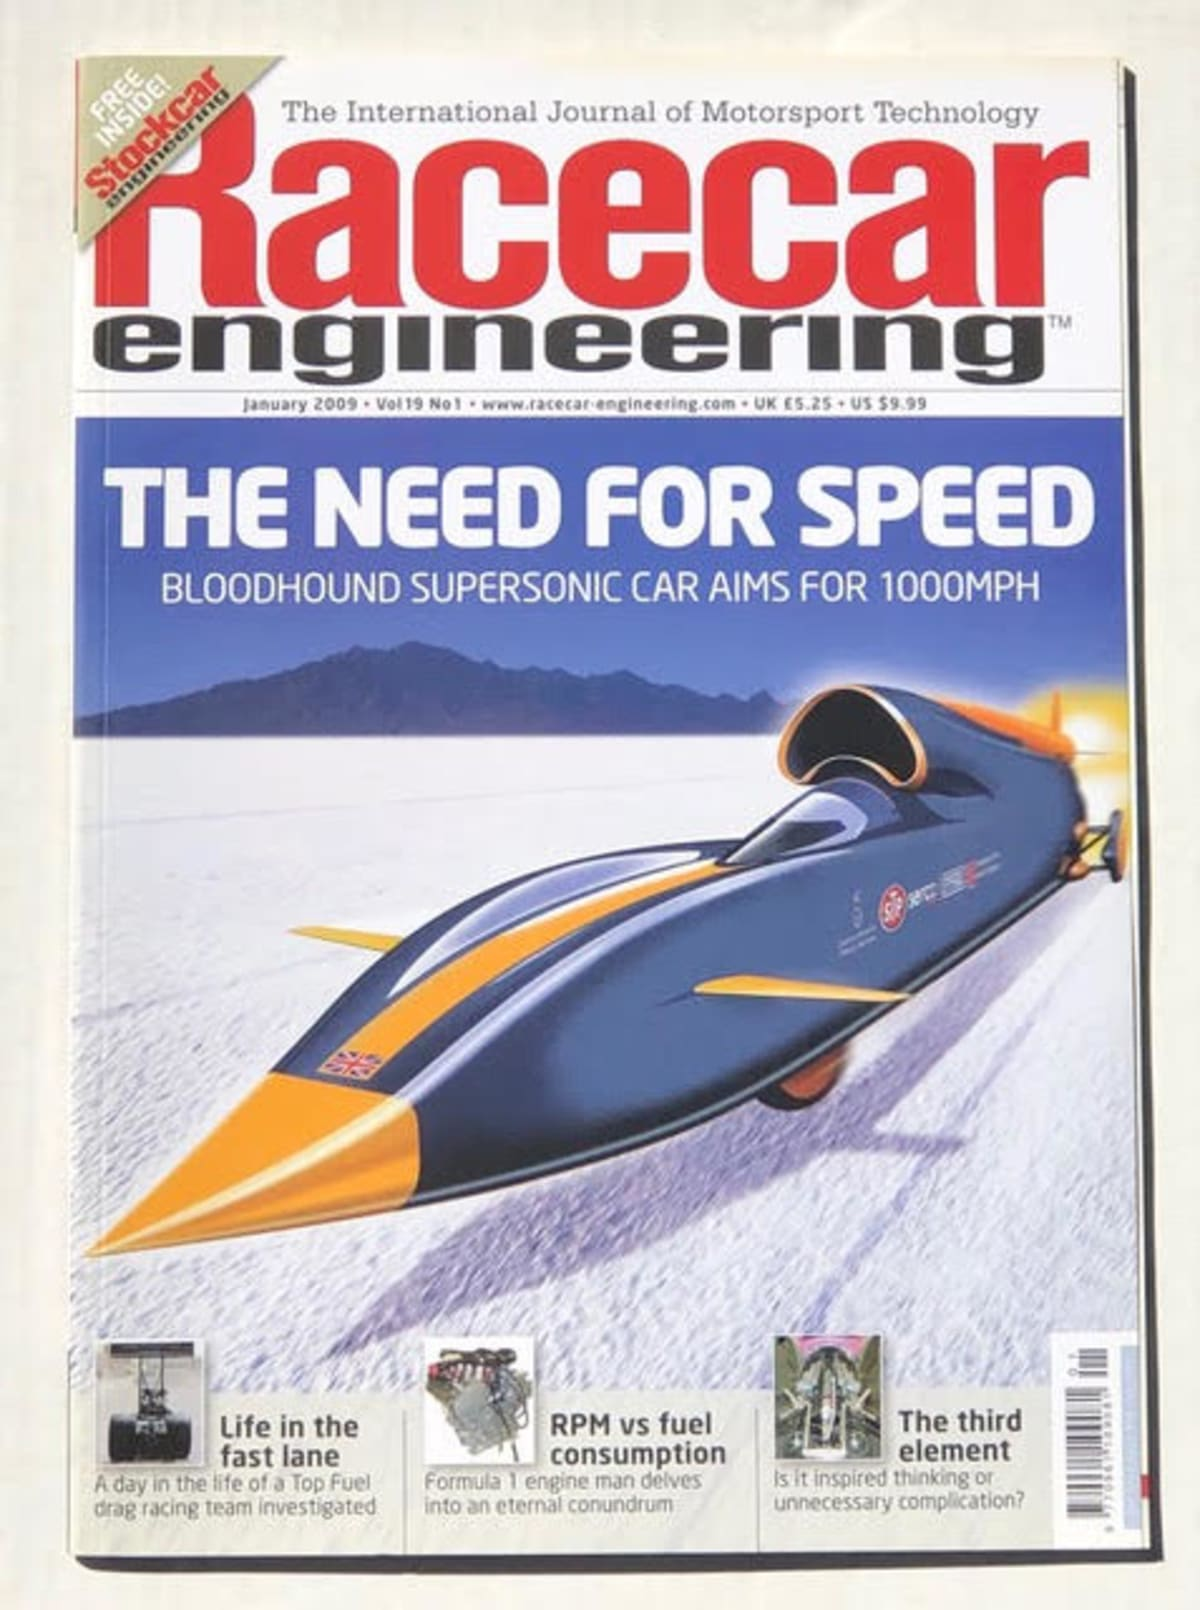 The Bloodhound in 2009 graces the cover of this magazine, covering its quest for 1,000 mph.